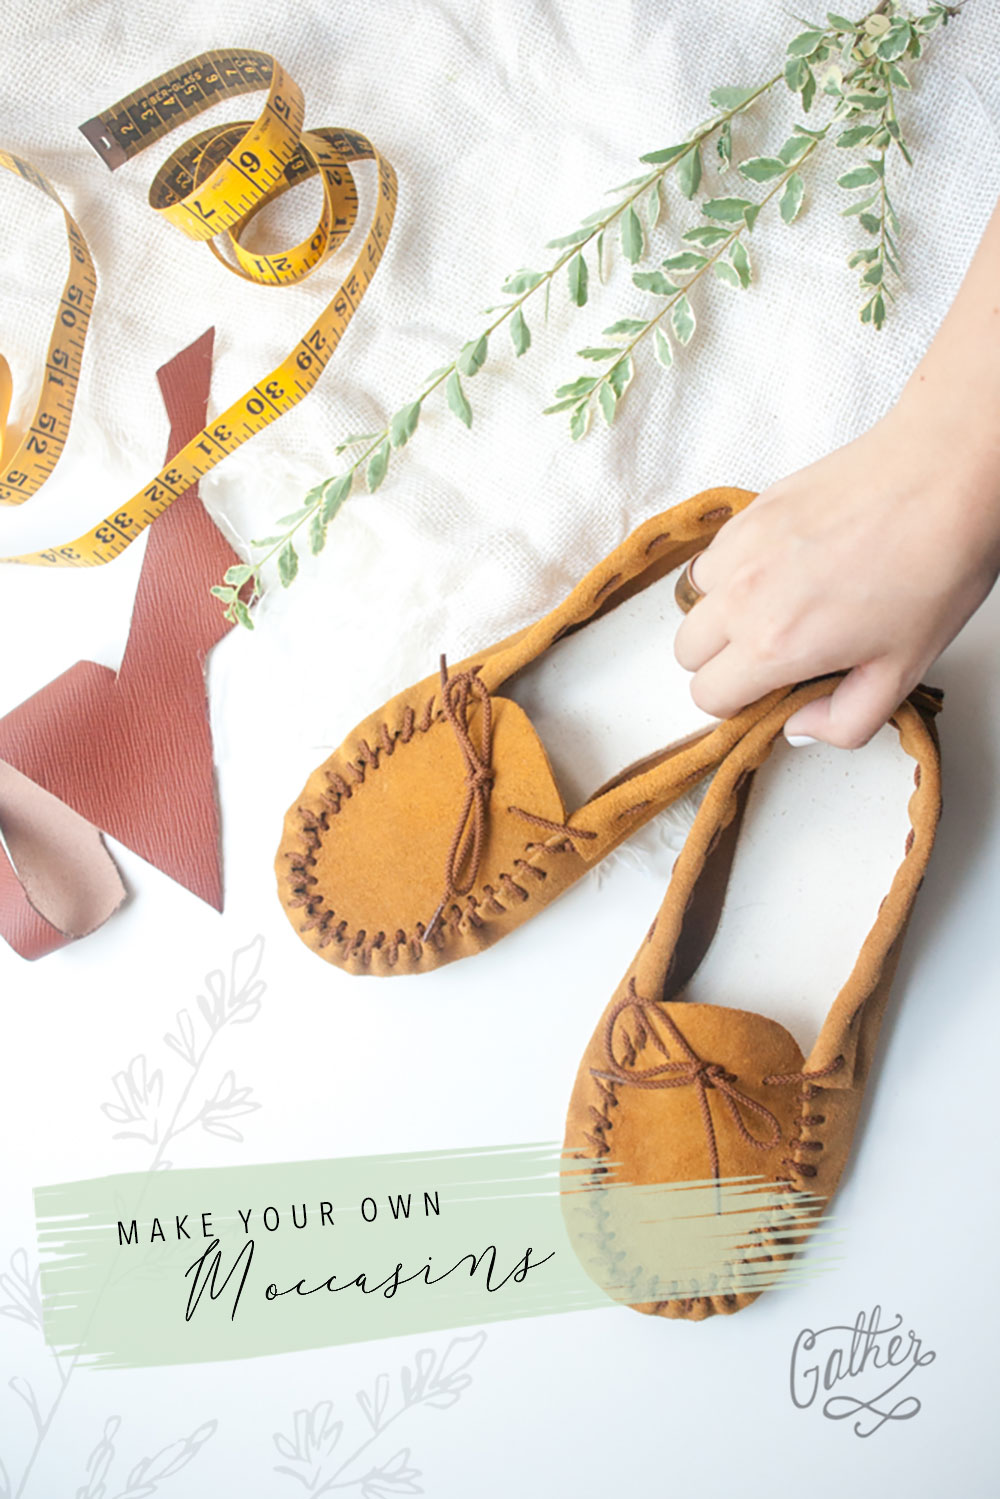 Make Your Own Moccosins | Gather Goods Co